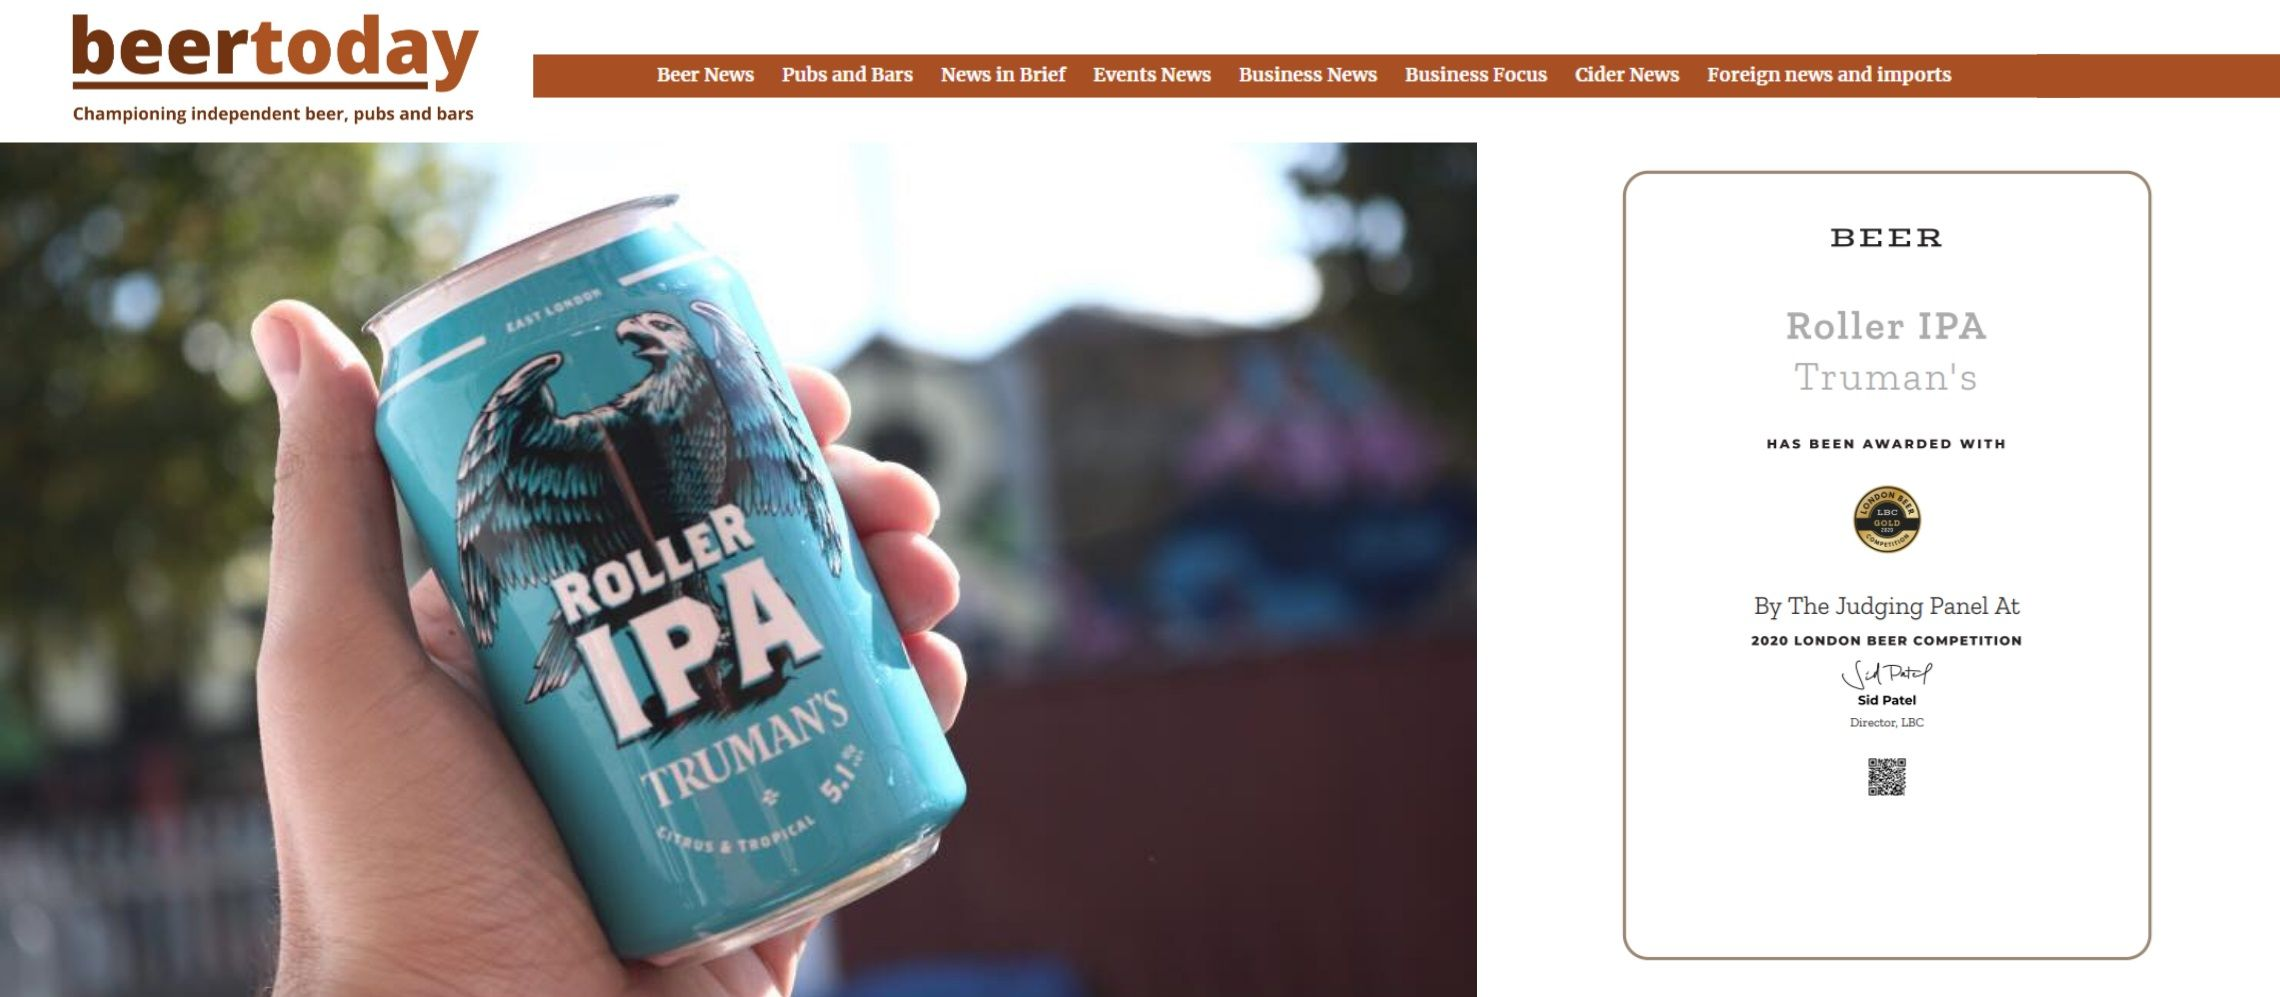 Photo for: Truman's Roller IPA Wins London Beer Competition